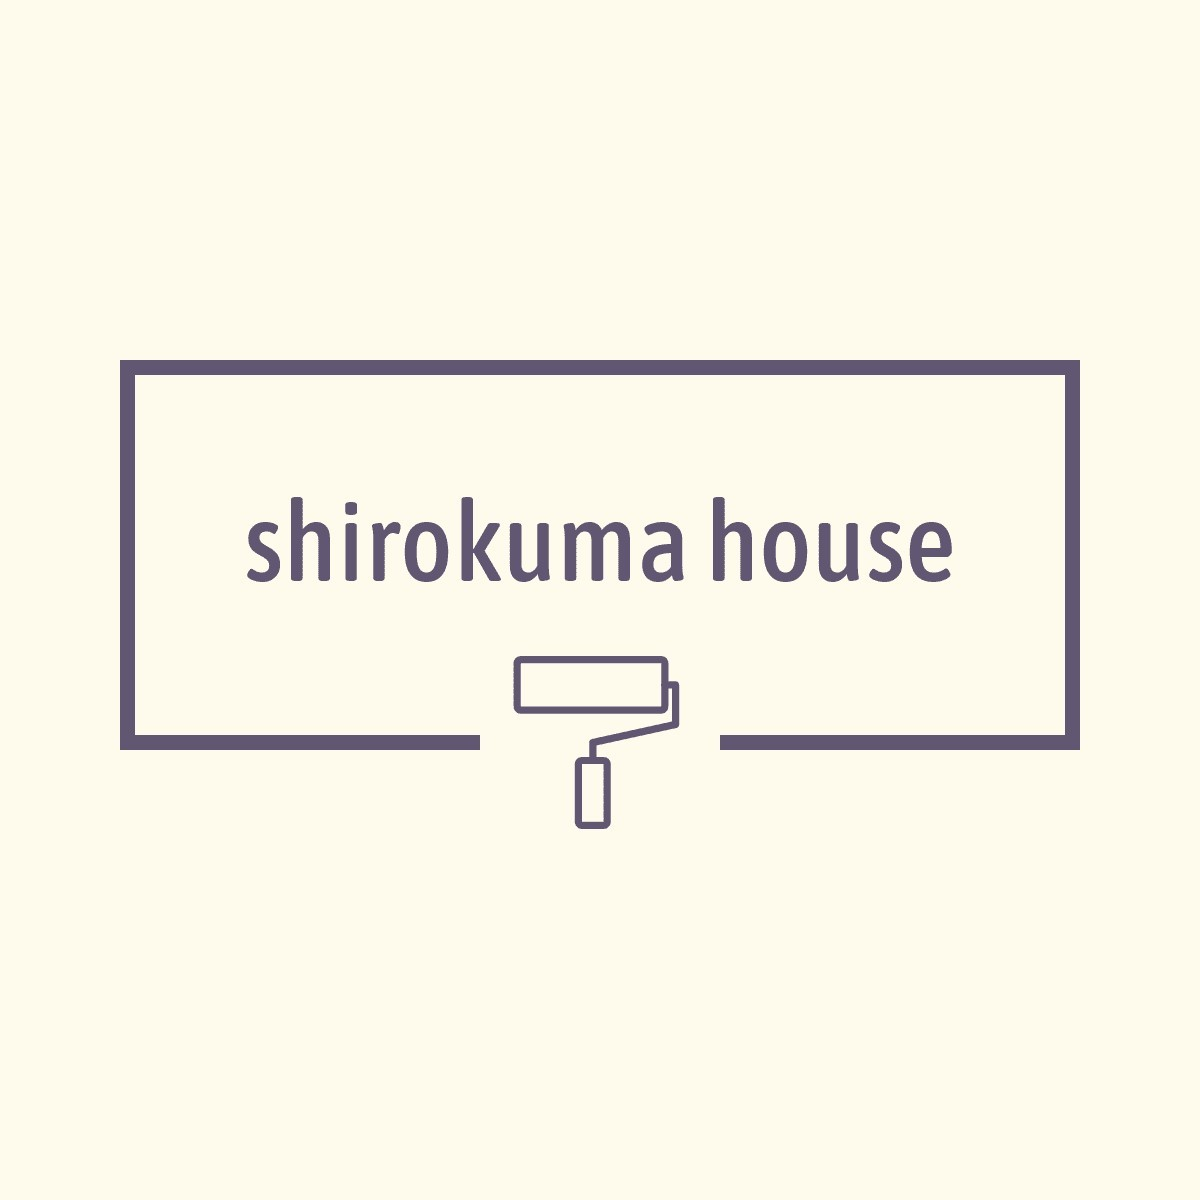 shirokuma house ロゴ